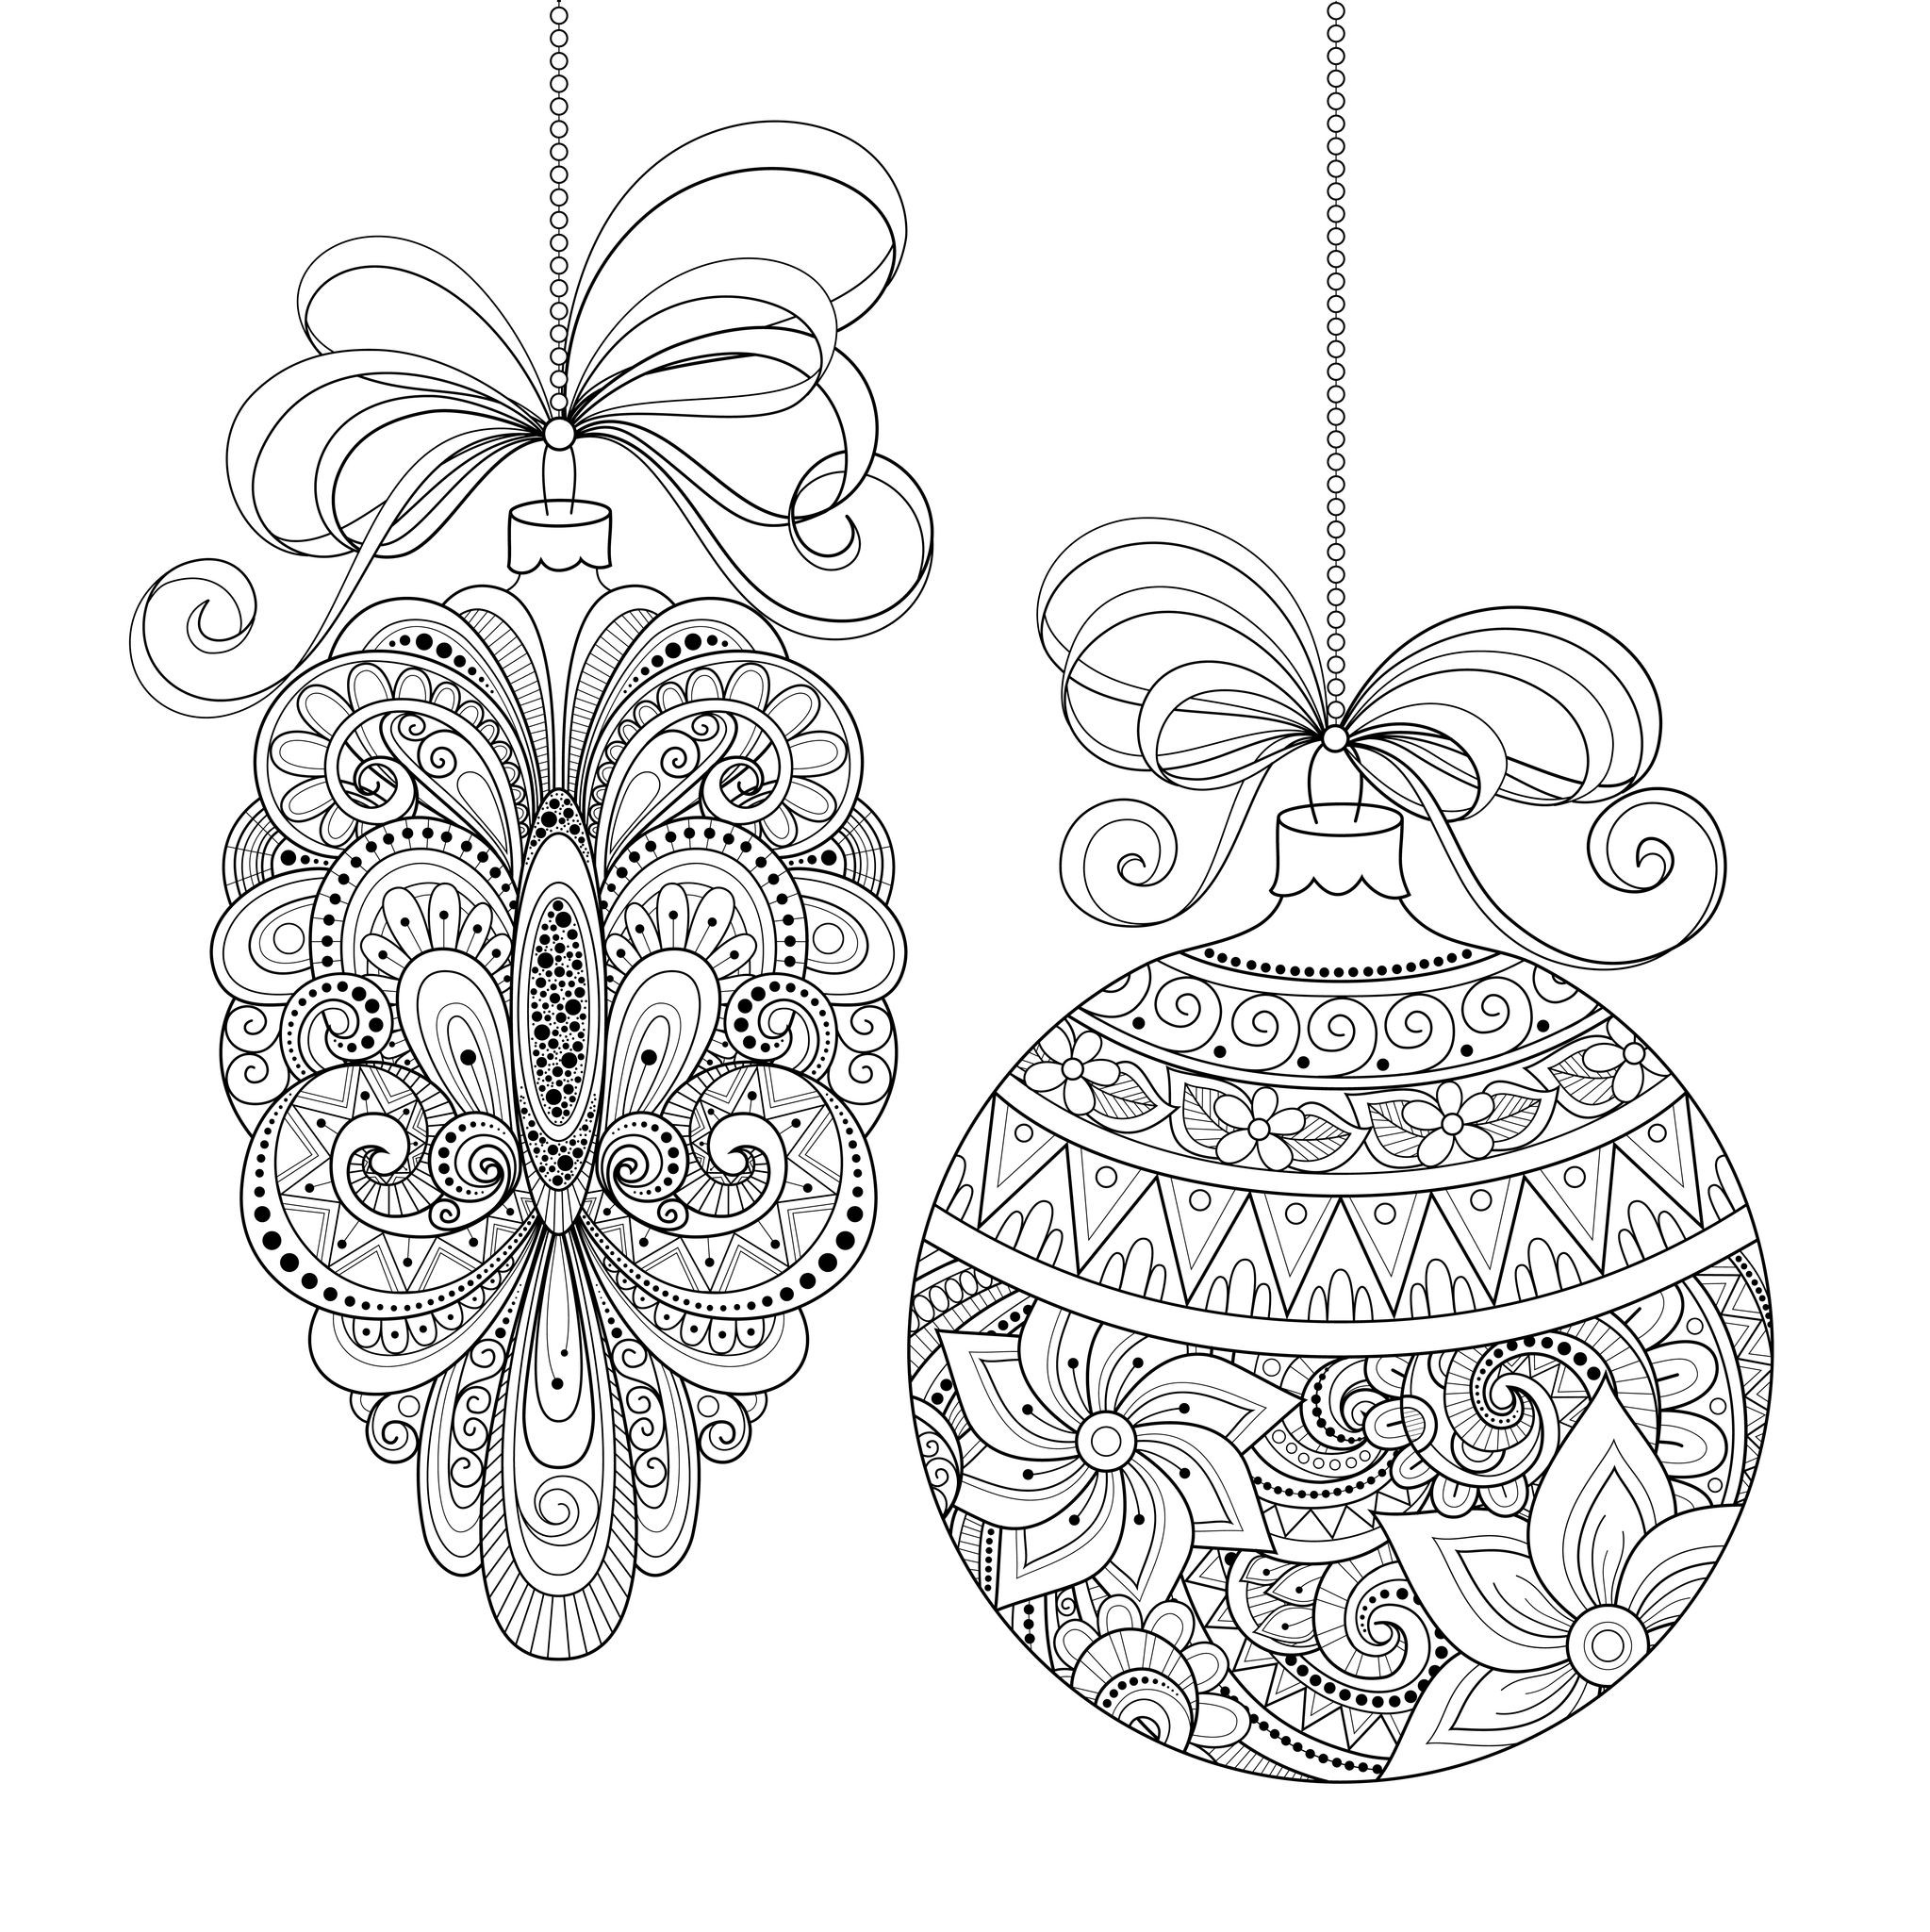 Best ideas about Adult Coloring Books . Save or Pin Christmas Coloring Pages for Adults Best Coloring Pages Now.